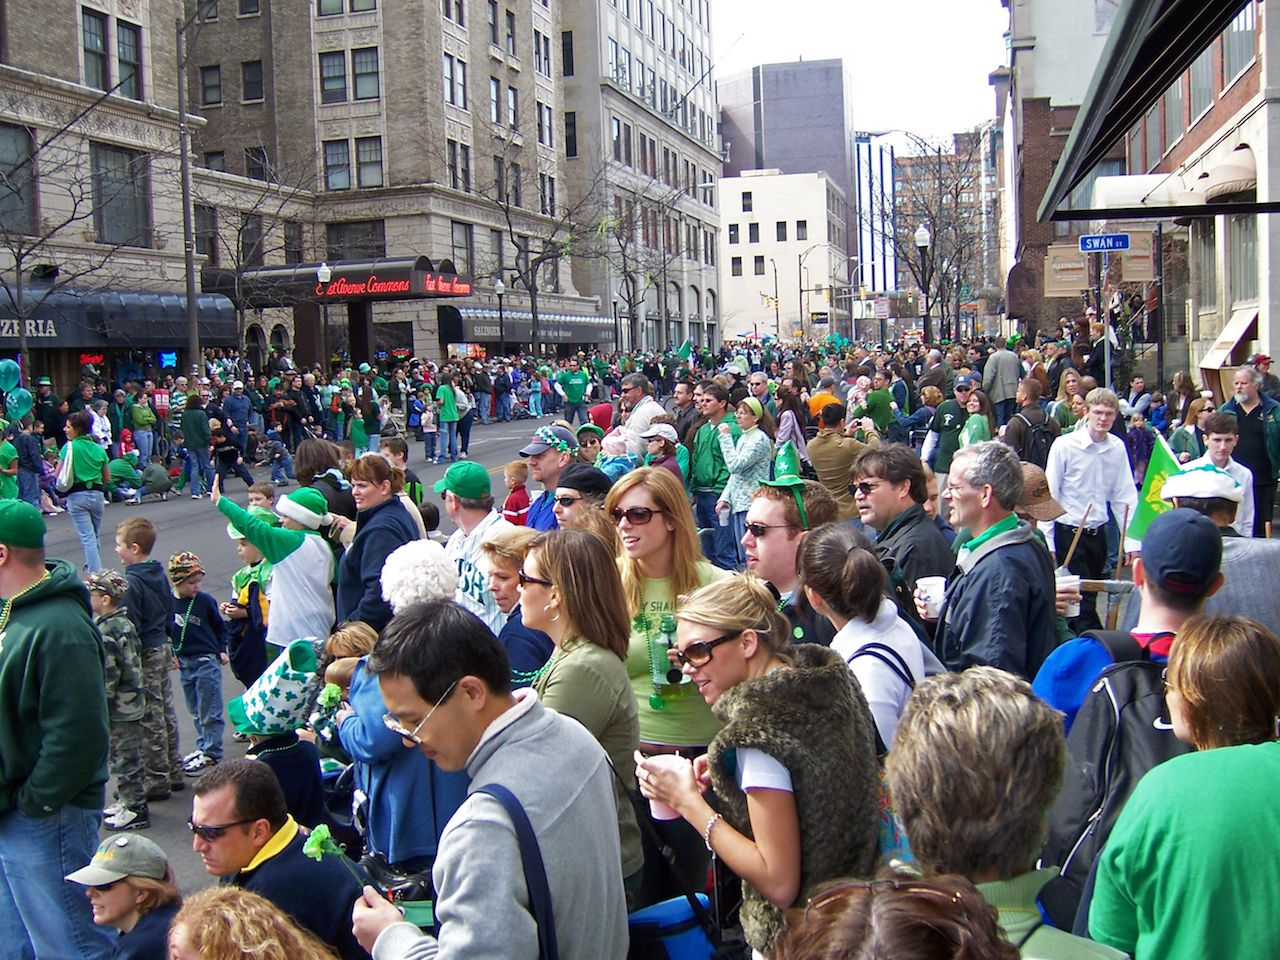 St Paddys Day parade celebrants